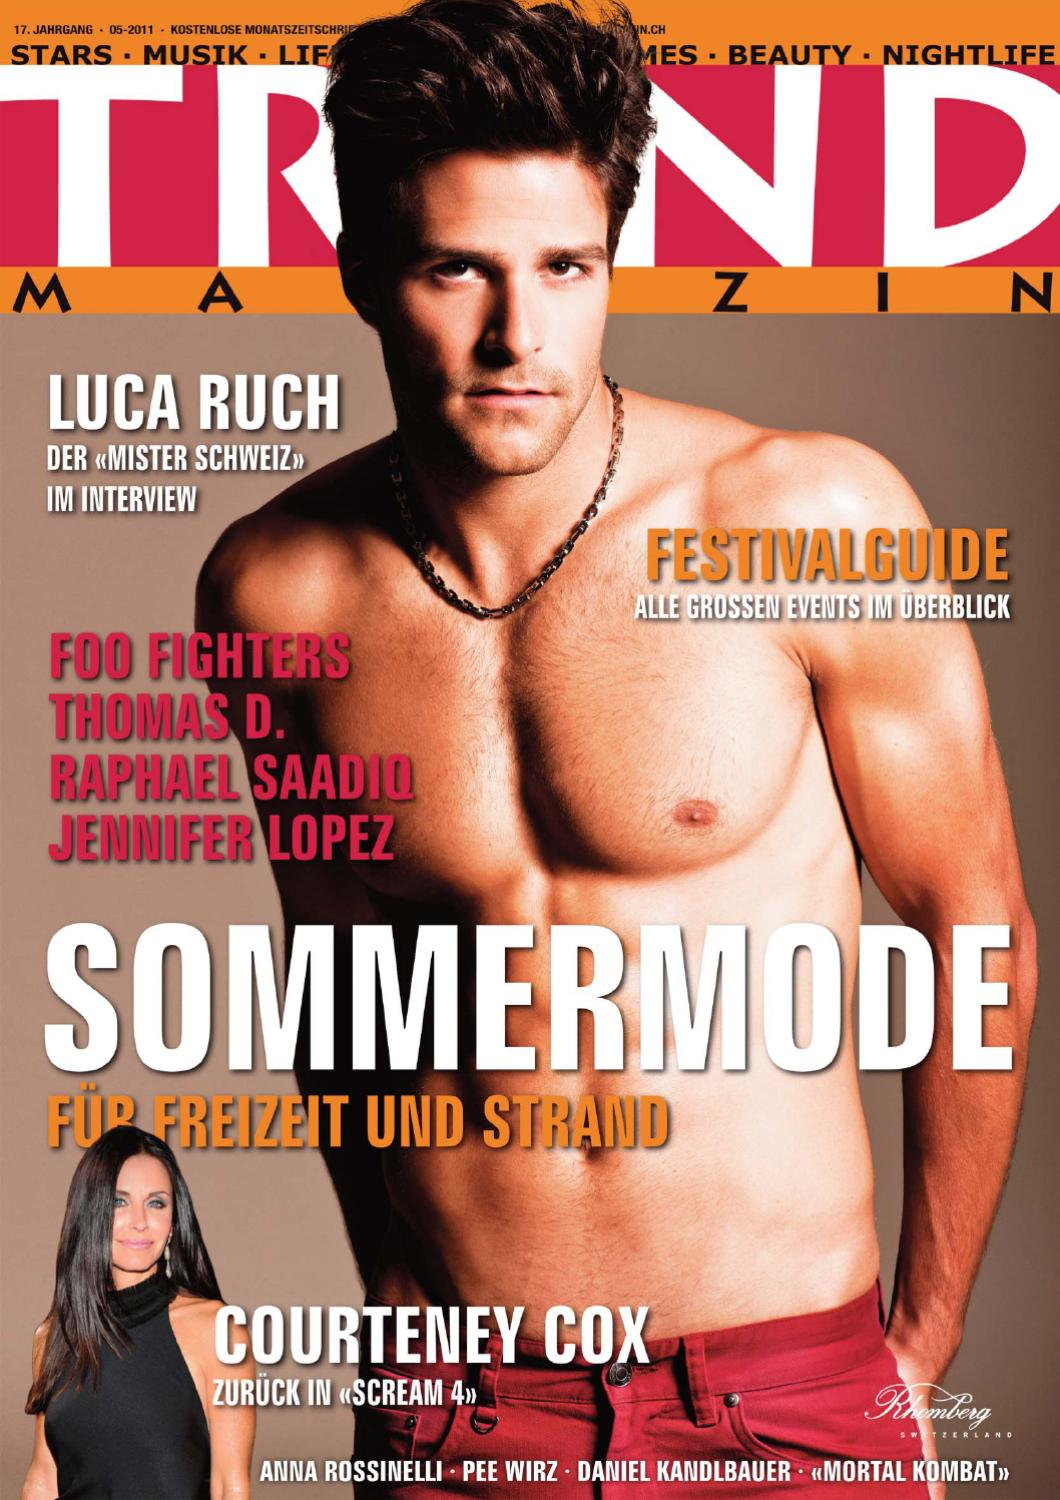 TREND MAGAZIN 052011 by TREND MAGAZIN issuu